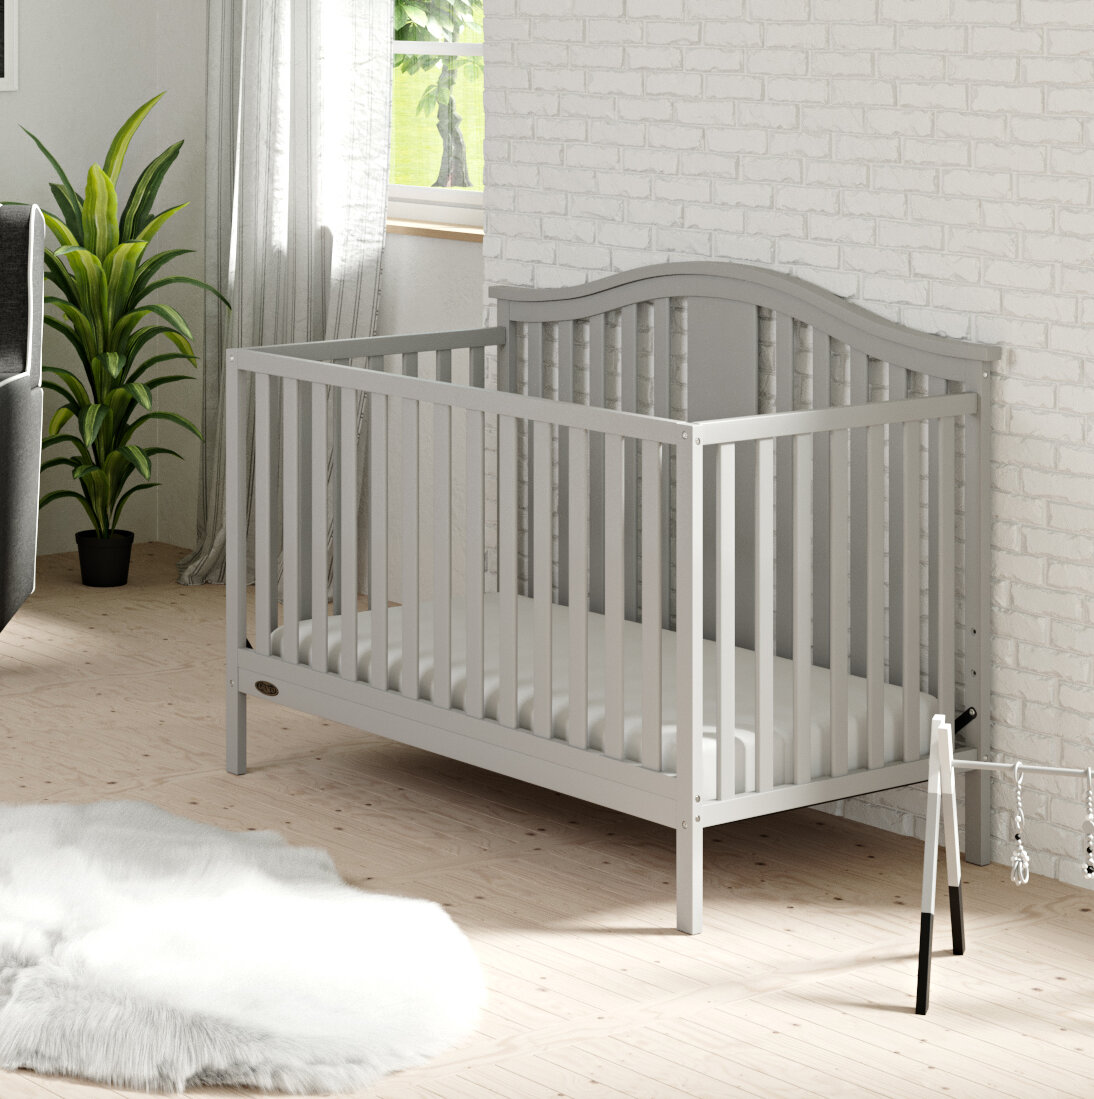 graco solano 4 in 1 convertible crib with mattress reviews wayfair